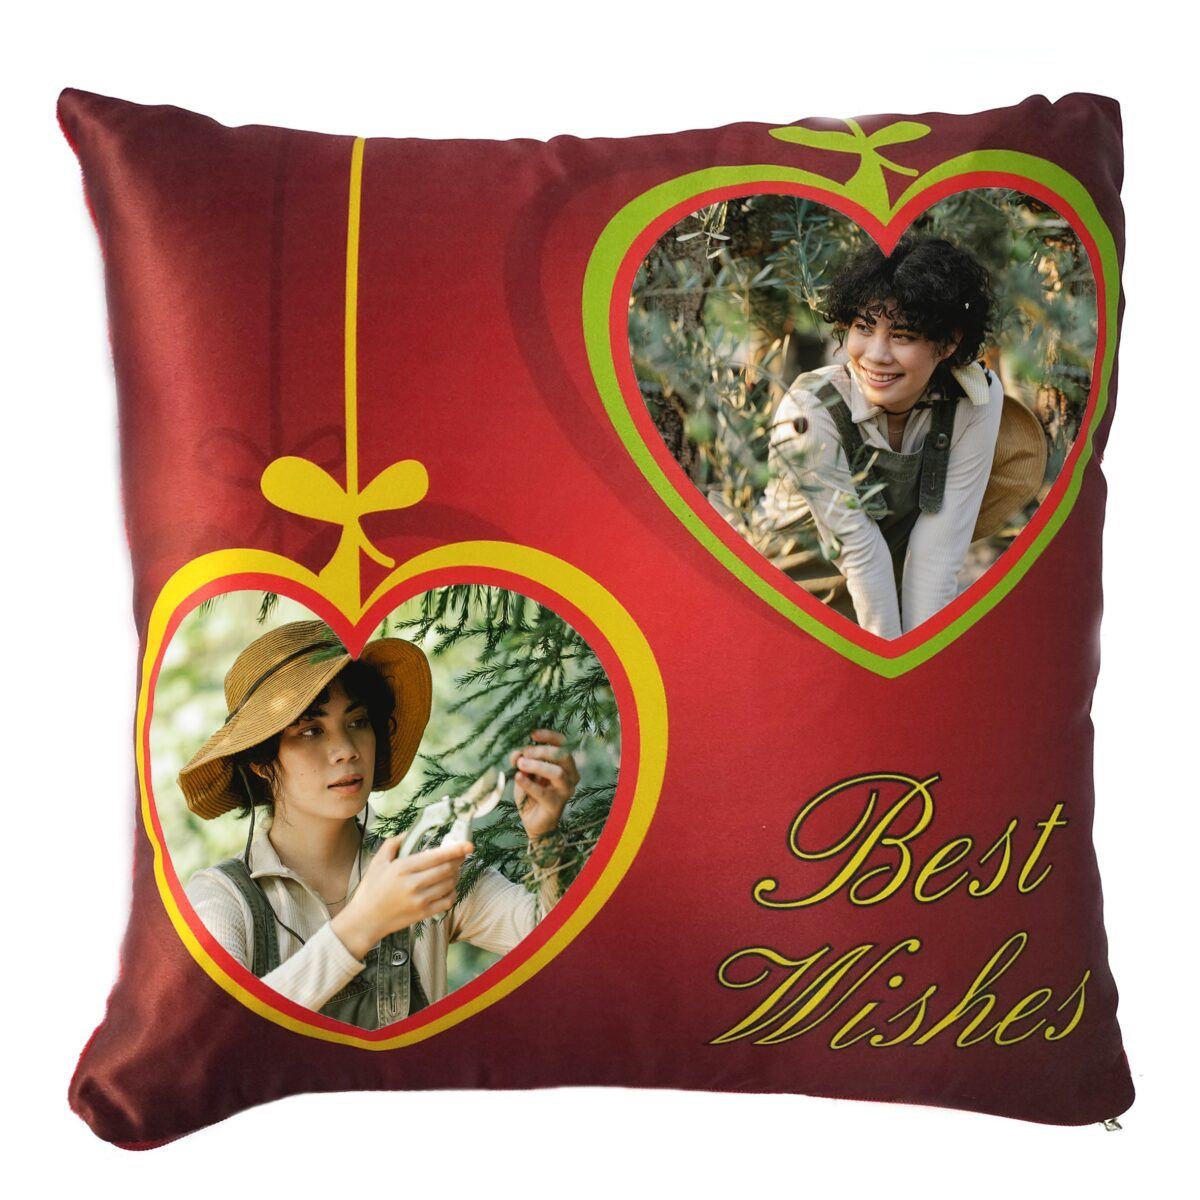 Square Shape Personalized Photo Printed Cushion (Best Wishes with Two Big Heart Design Pre Printed)